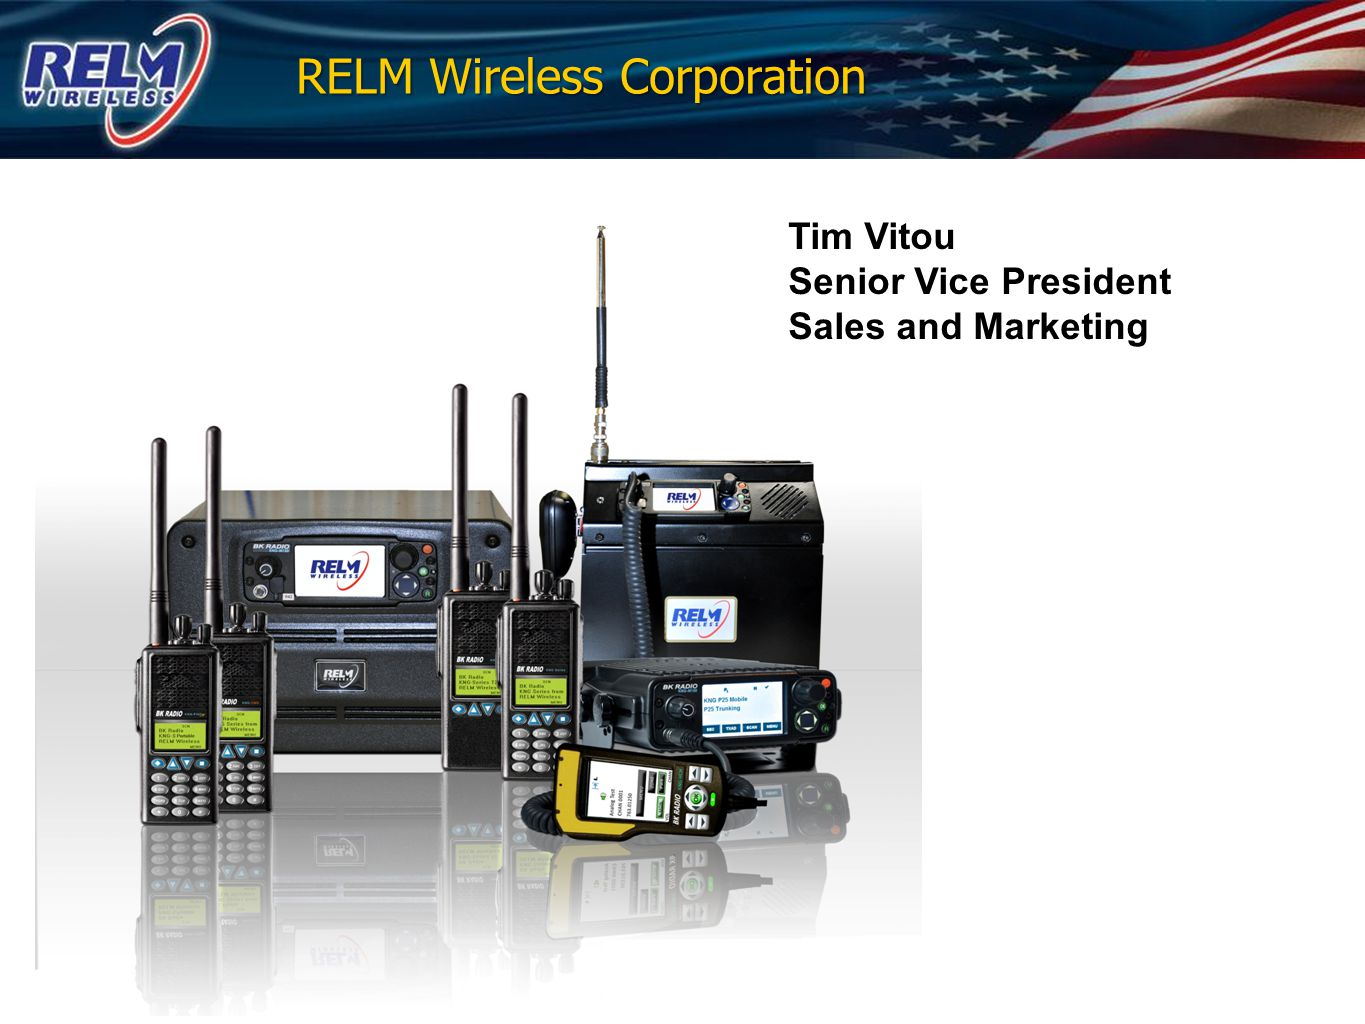 Corporate Overview   Design & Manufacture P25 Digital & Analog two- way Land Mobile Radio (LMR) radio products   Portable radios, Mobile radios, Base Stations and Repeaters   P25 Expertise, we are solely dedicated to P25   Established 1947   U.S.